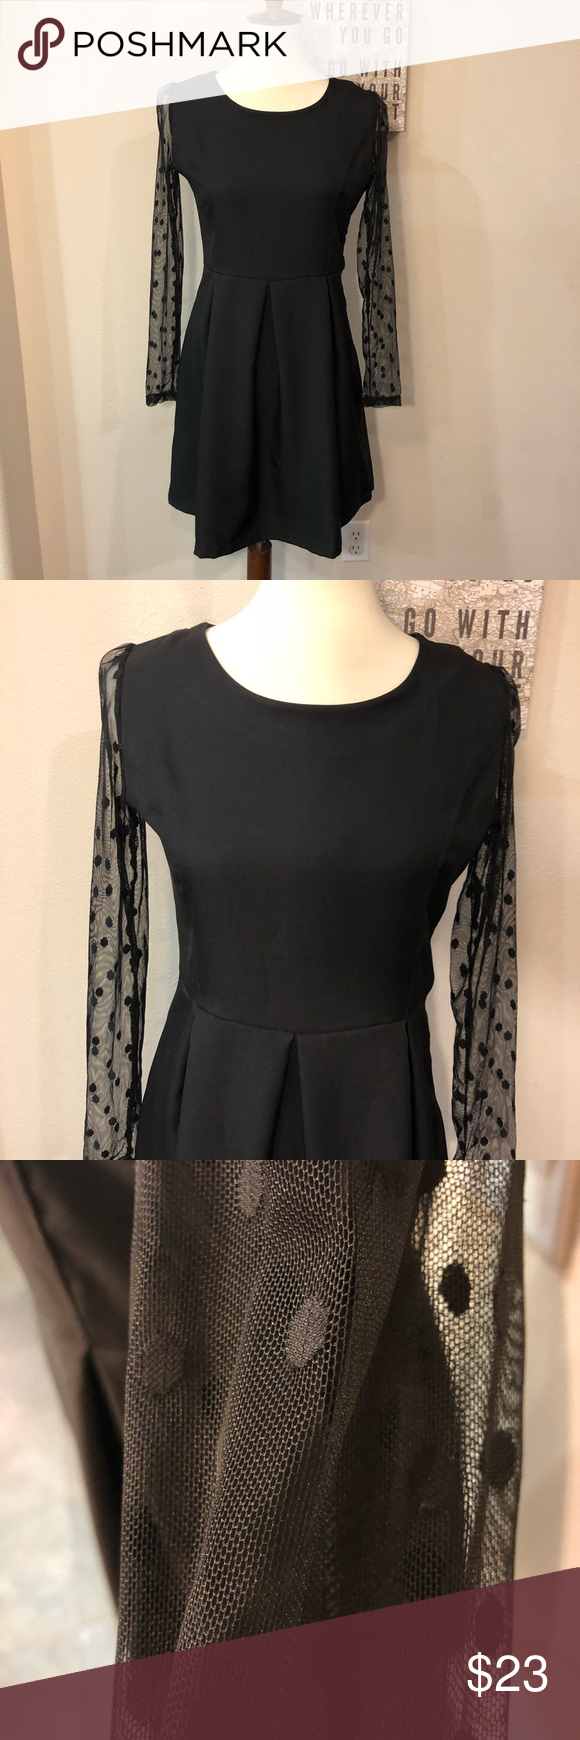 Black Dress With Sheer Long Lace Sleeves Polkadot Dainty Dress Perfect Little Black Dress Lace Sleeves [ 1740 x 580 Pixel ]